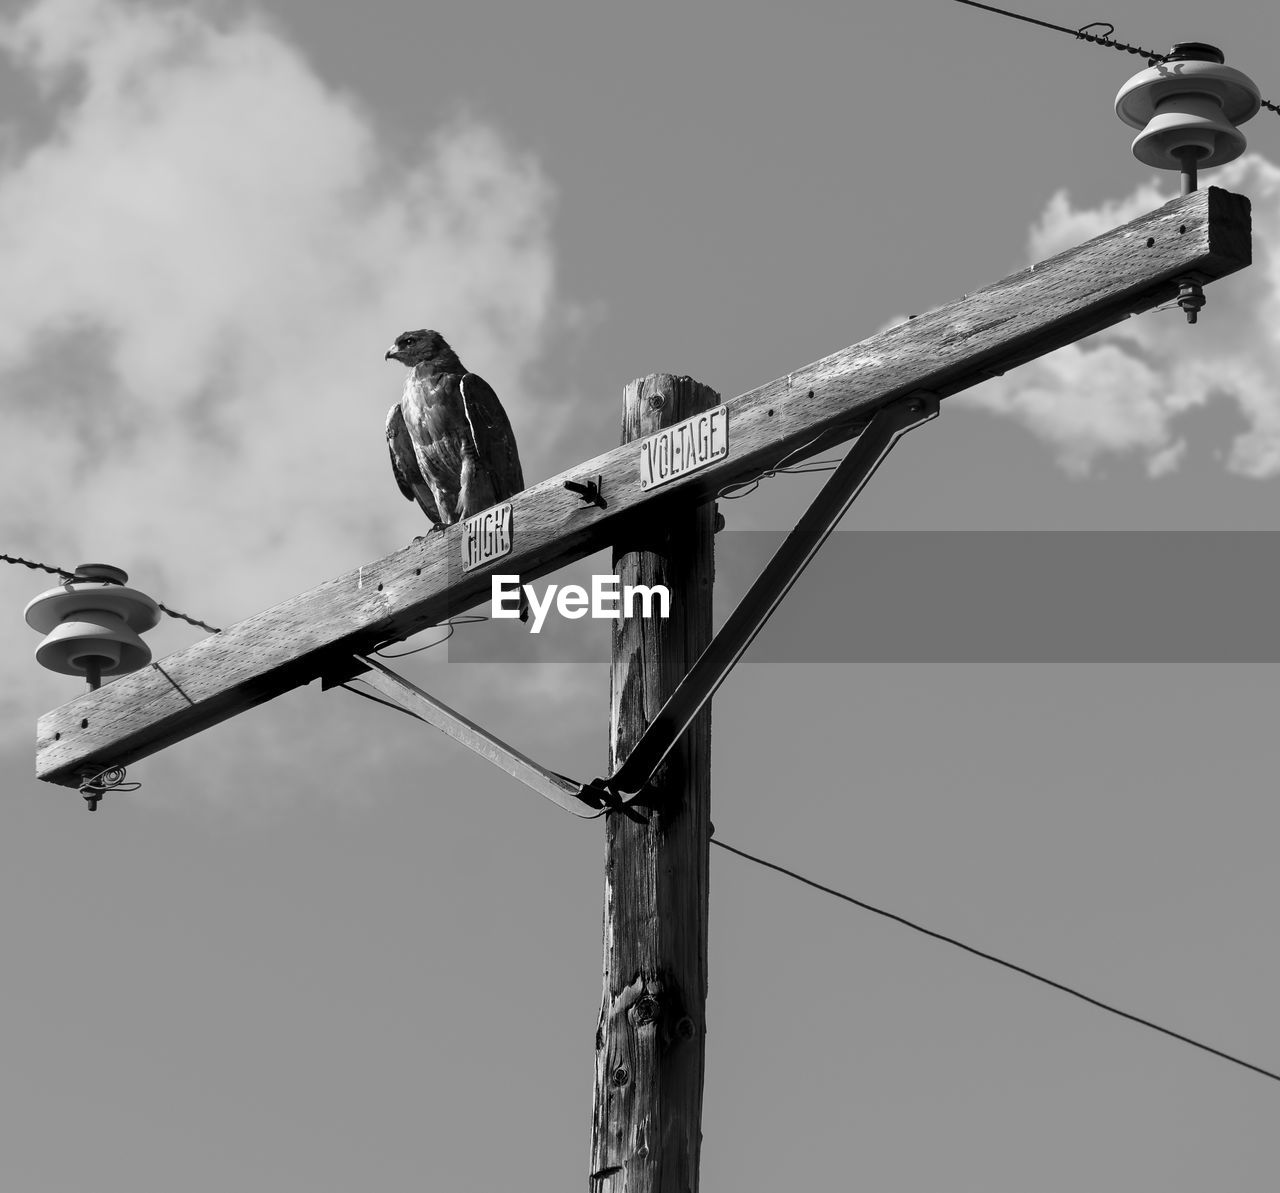 bird, vertebrate, animal themes, animal, animals in the wild, animal wildlife, low angle view, perching, sky, no people, one animal, nature, day, cable, electricity, power line, outdoors, technology, metal, power supply